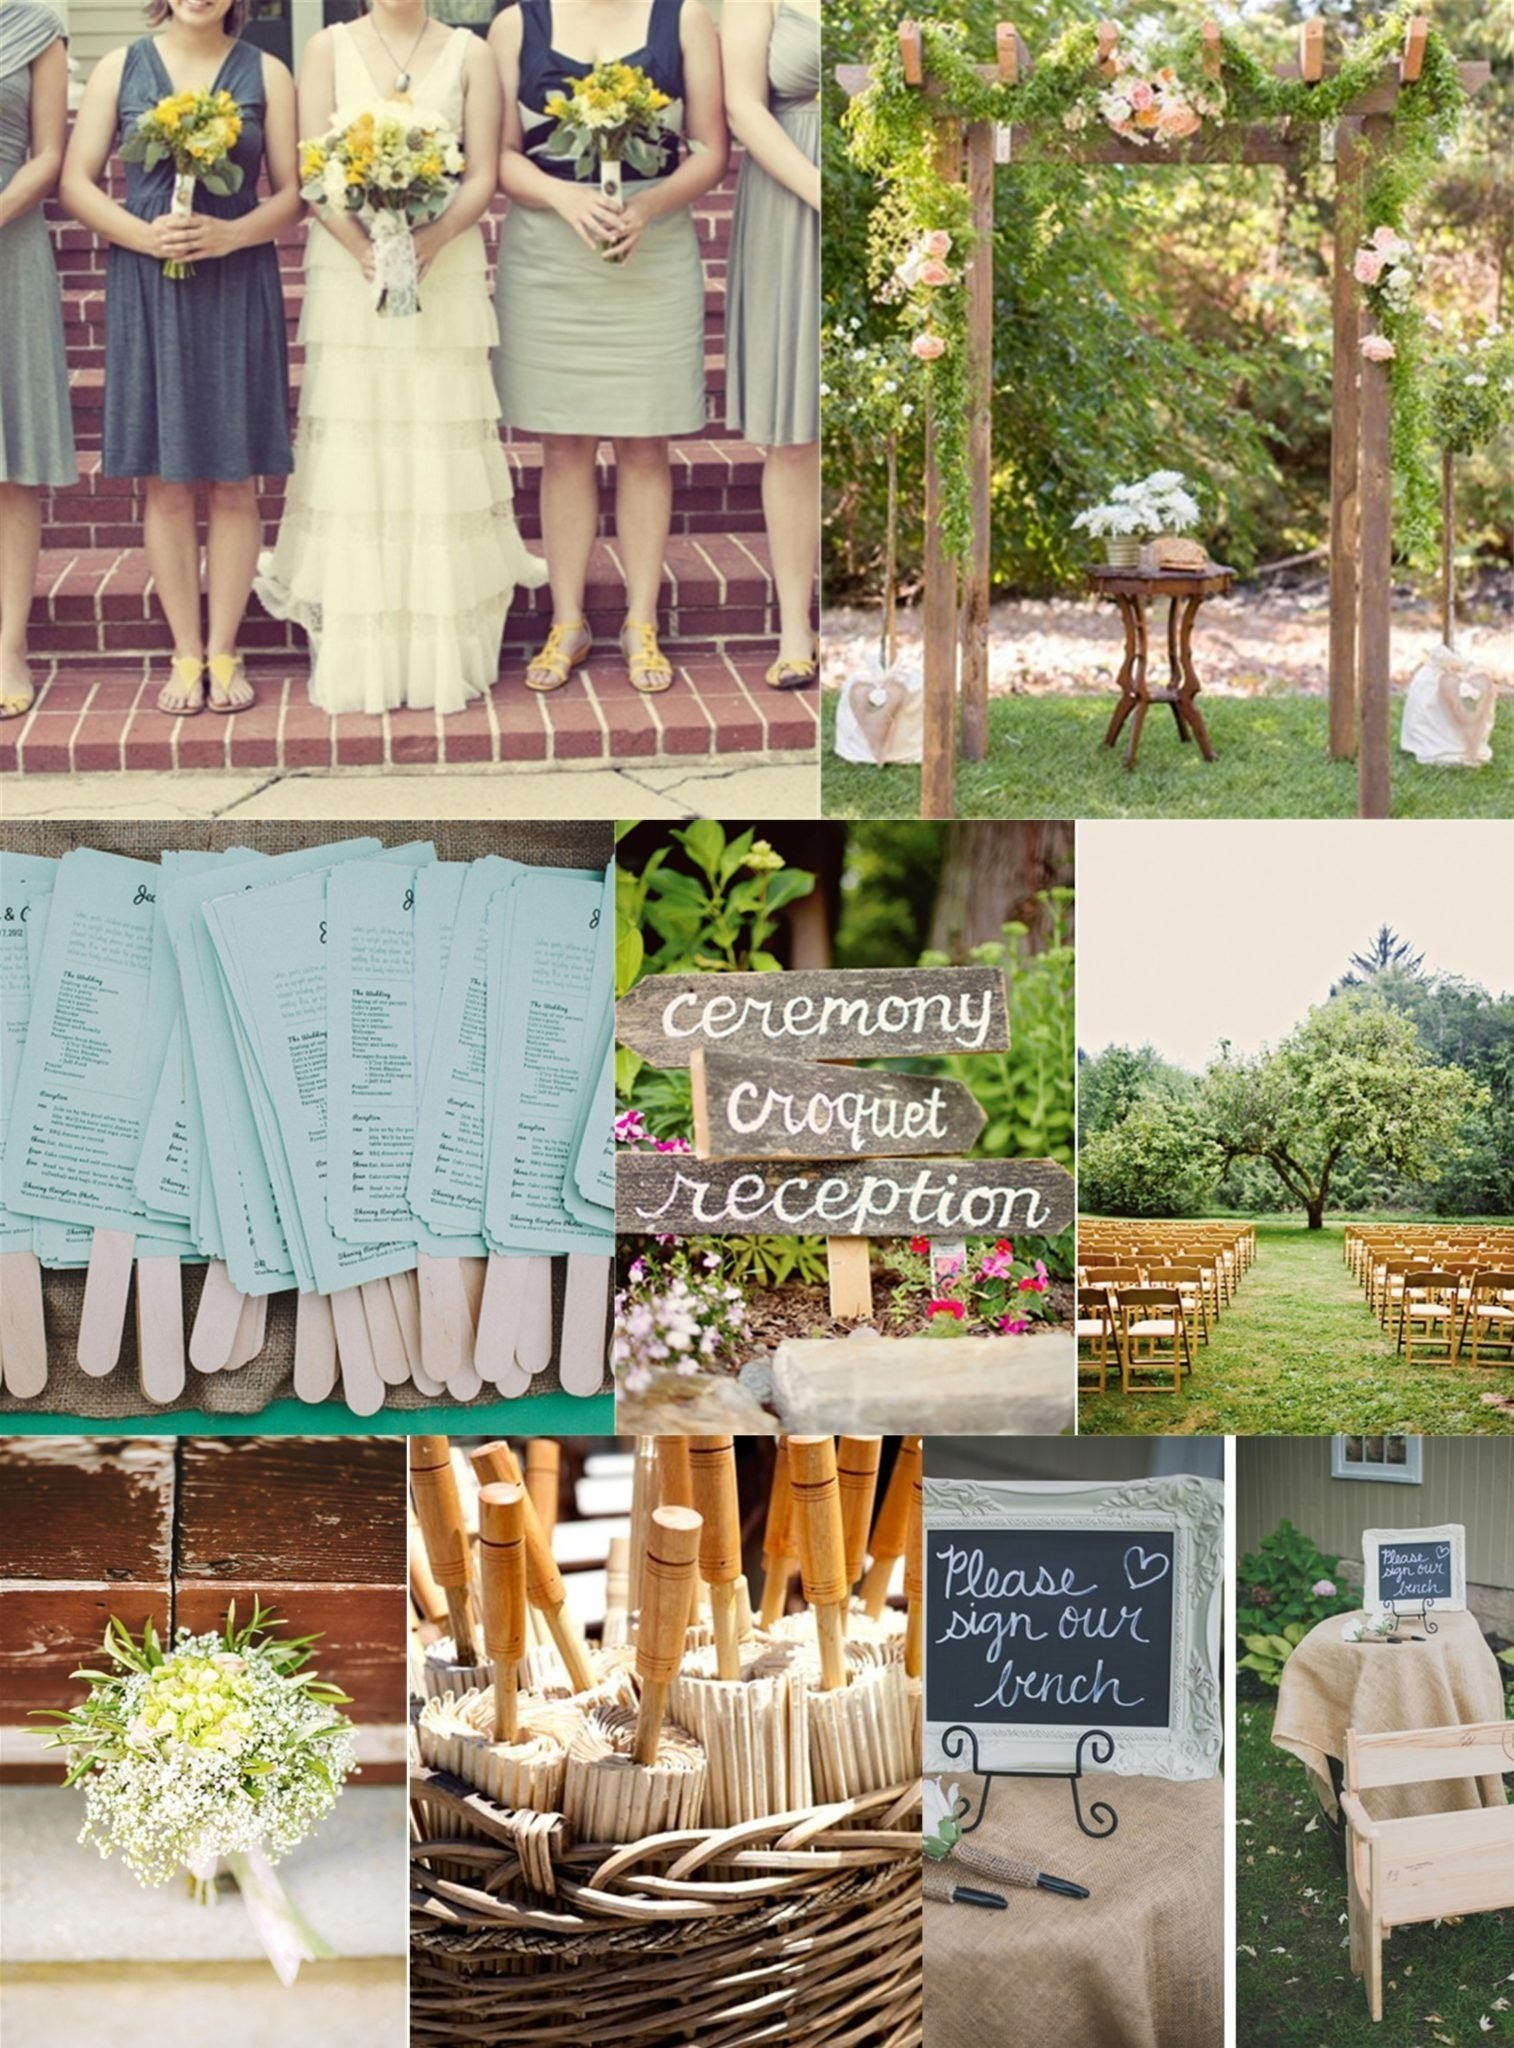 10 Attractive Wedding Ideas For Summer On A Budget essential guide to a backyard wedding on a budget 5 2020